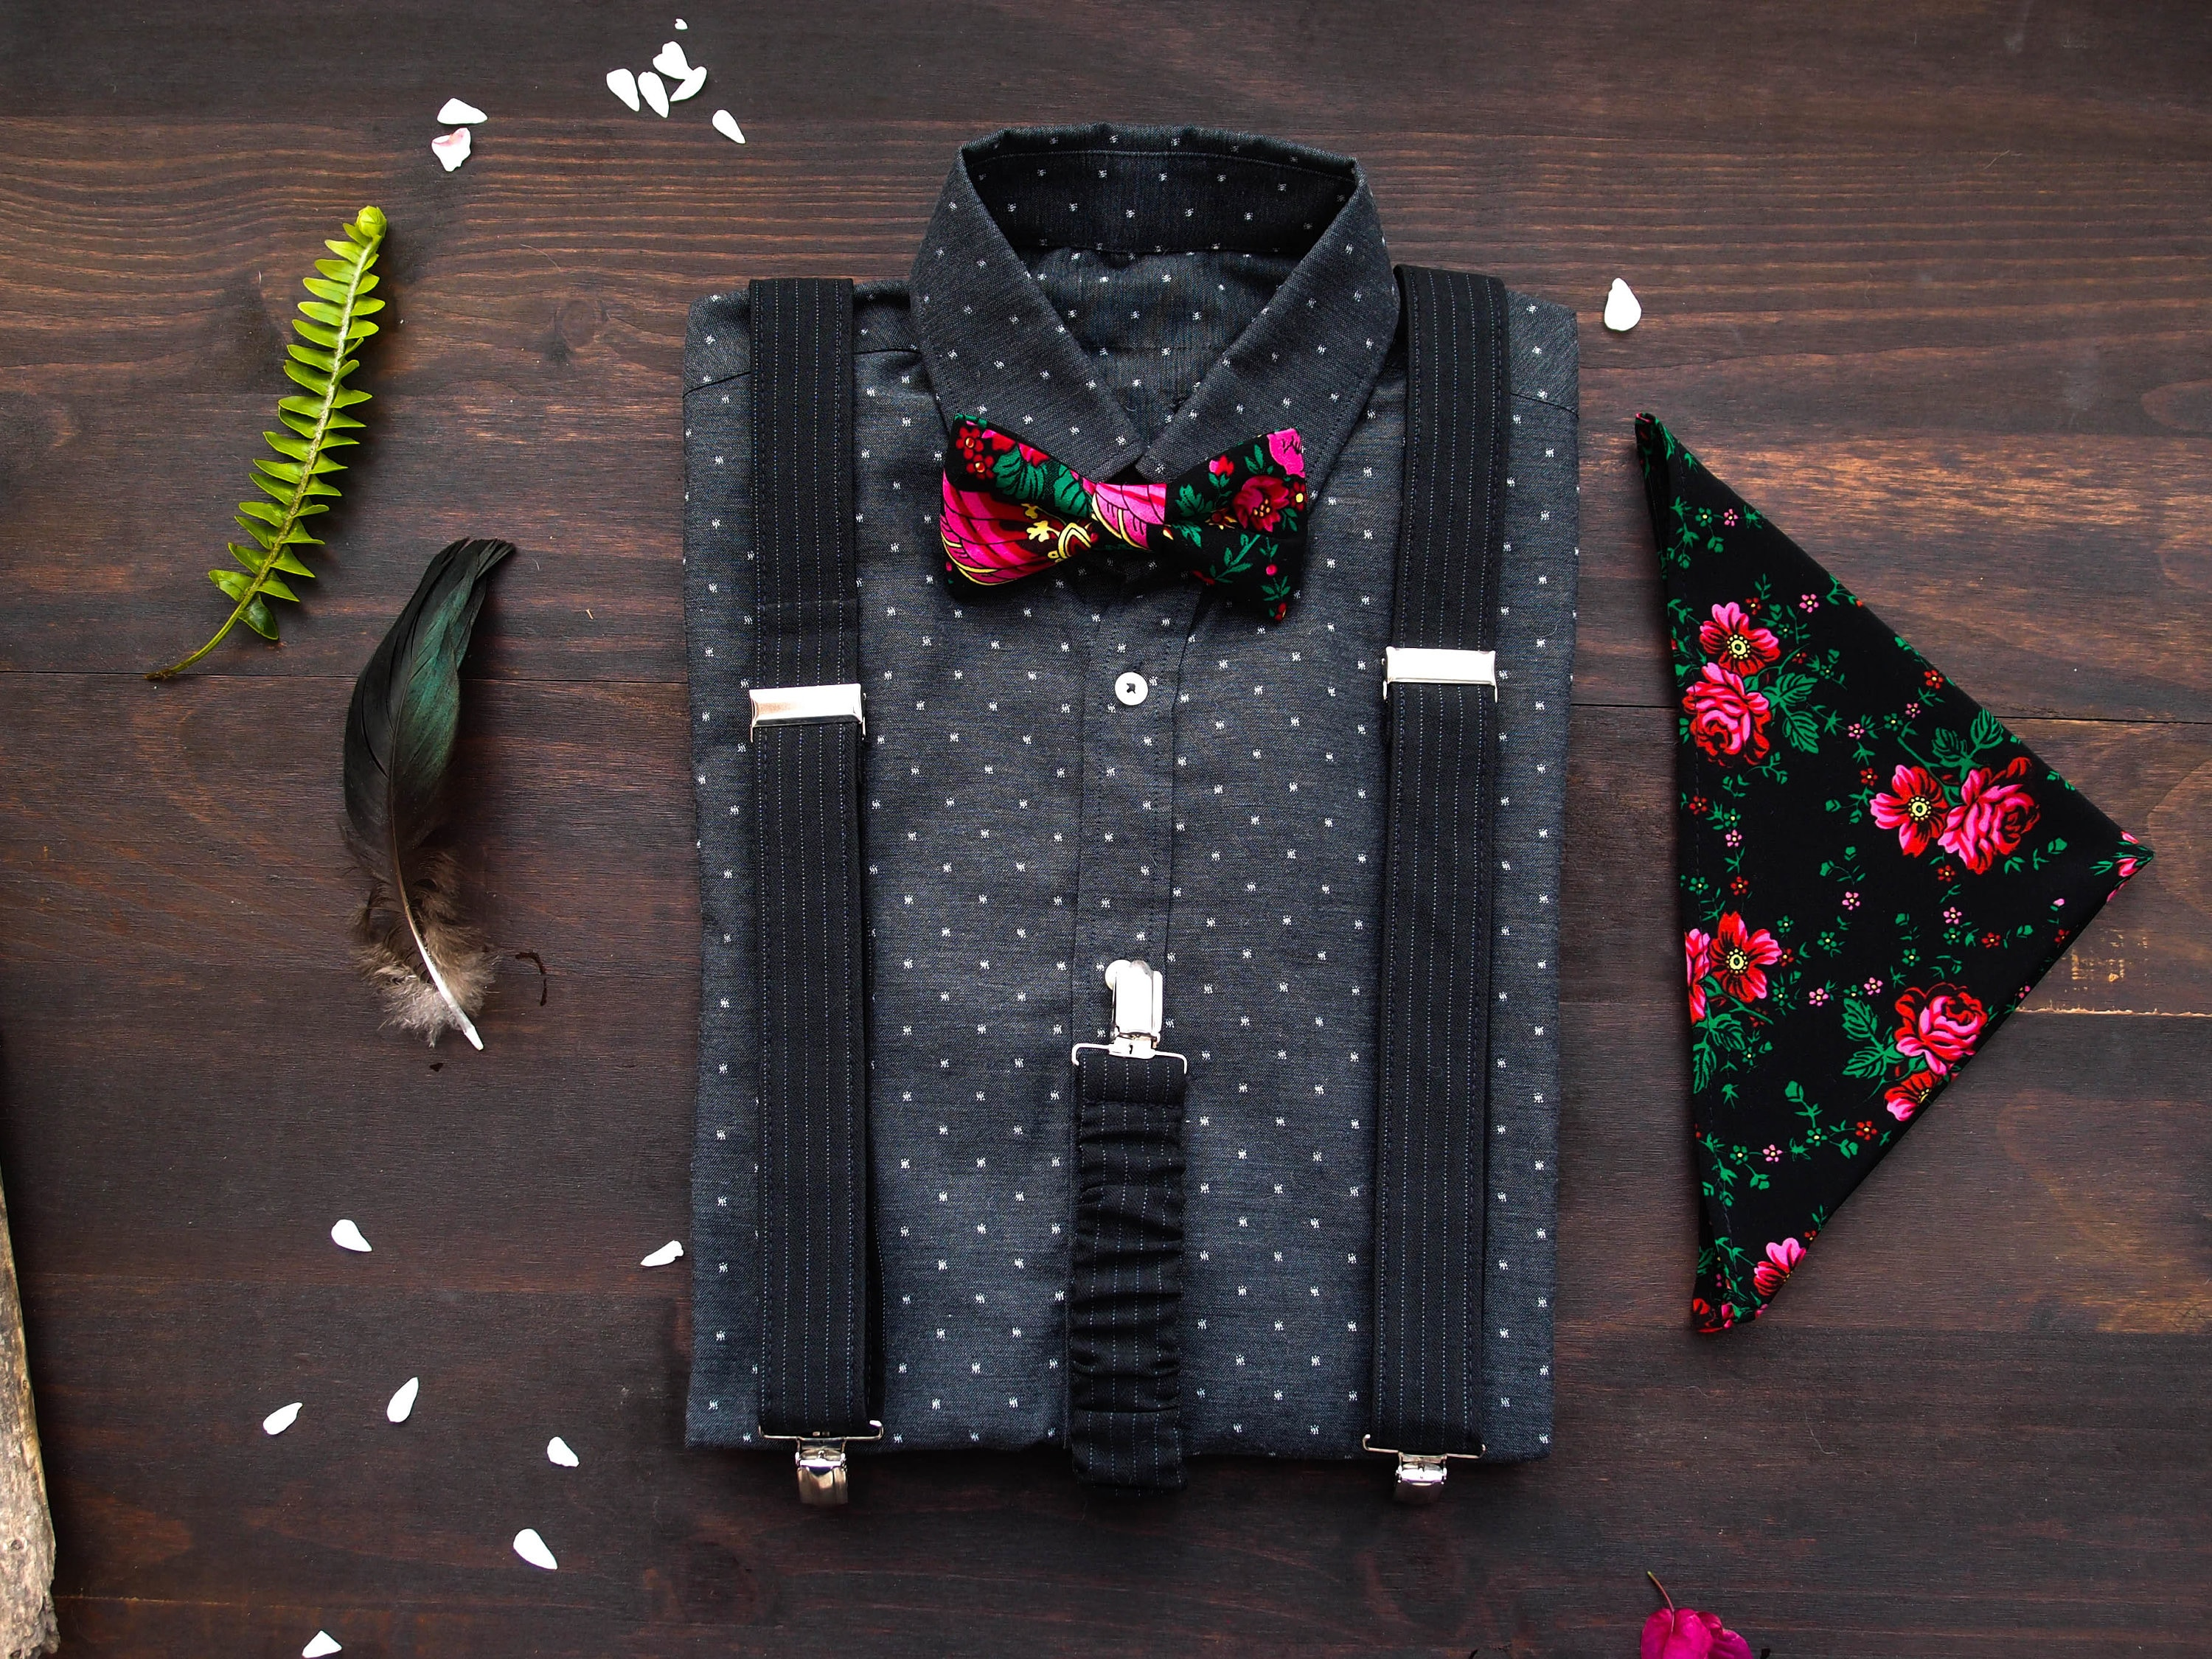 d43cb2c27273 Black mens suspenders and bow tie with matching pocket square with roses,  Floral bow tie with braces and pocket square with roses in set